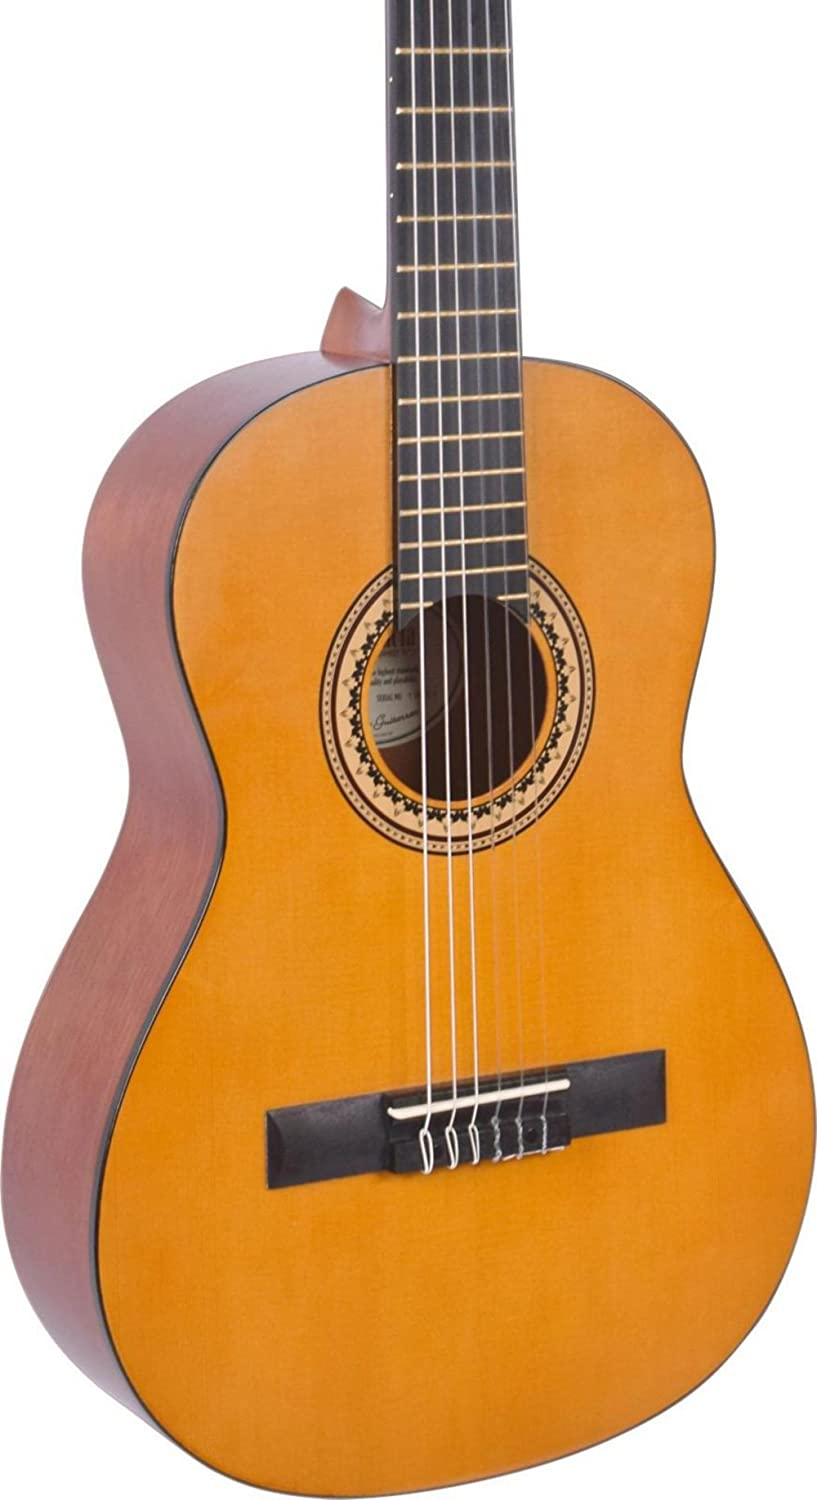 Valencia 200 Series 3/4 Size Classical Acoustic Guitar Natural